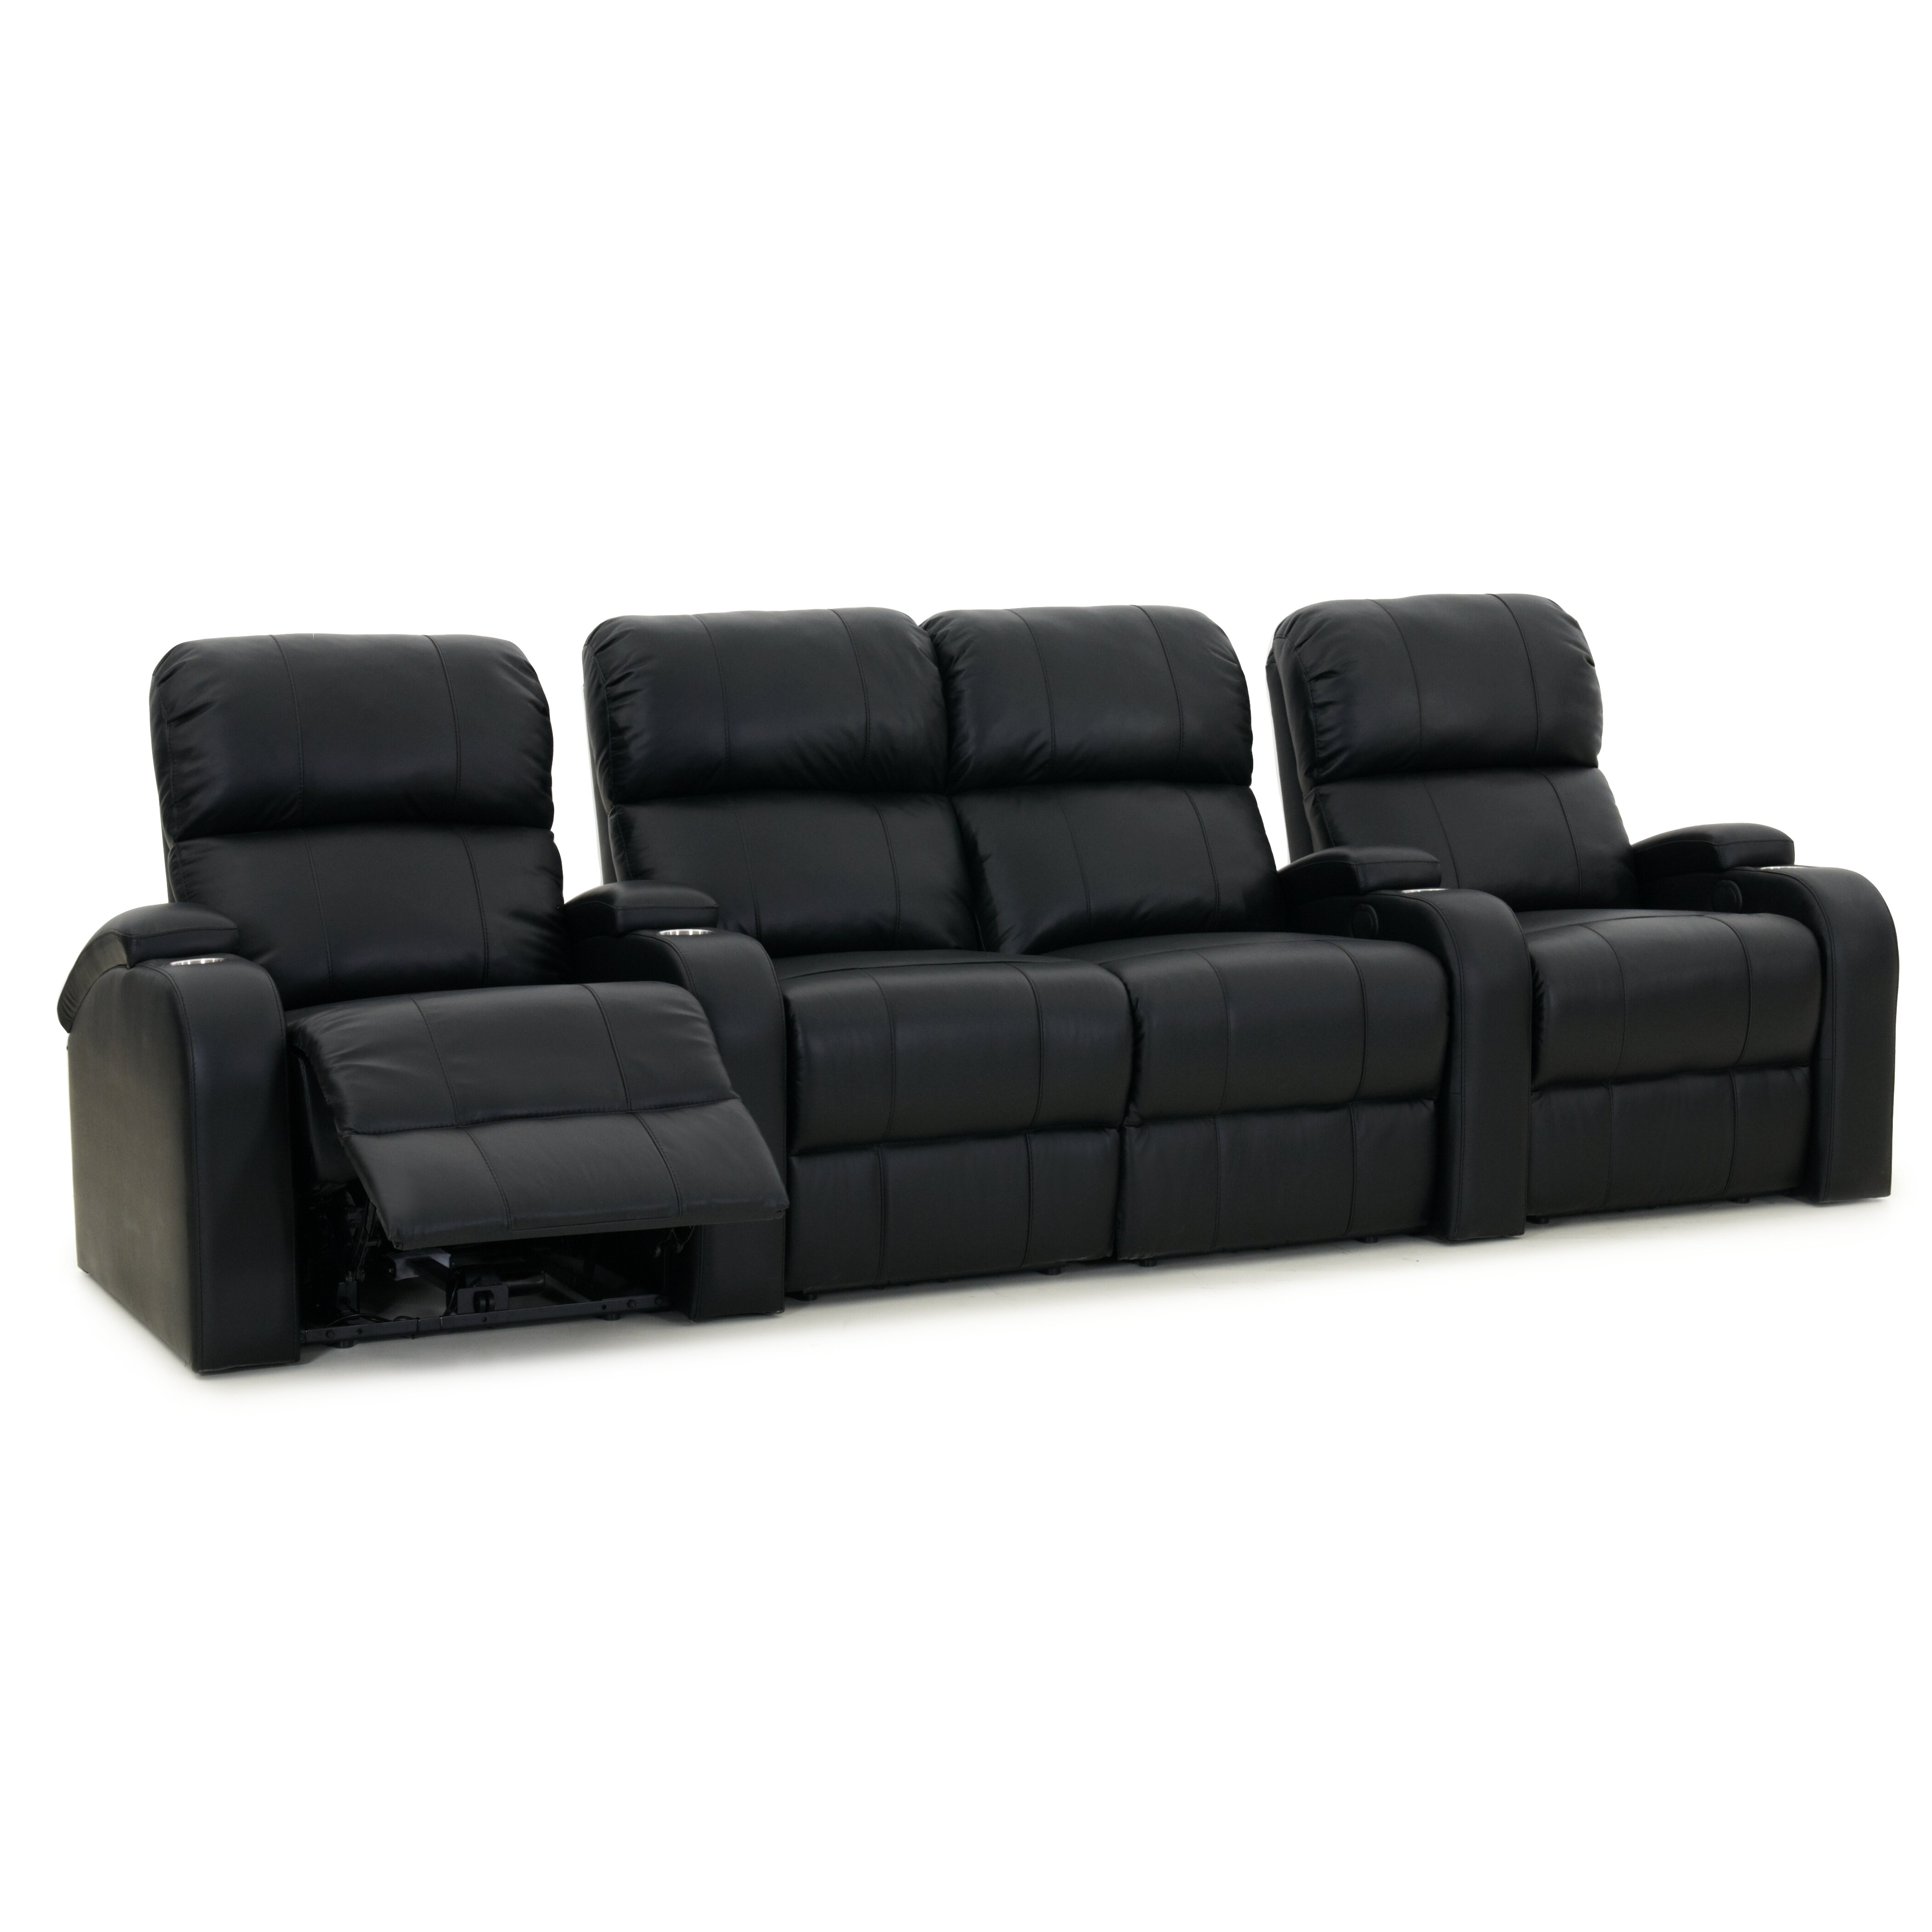 Octaneseating Edge Xl800 Home Theatre Loveseat Row Of 4